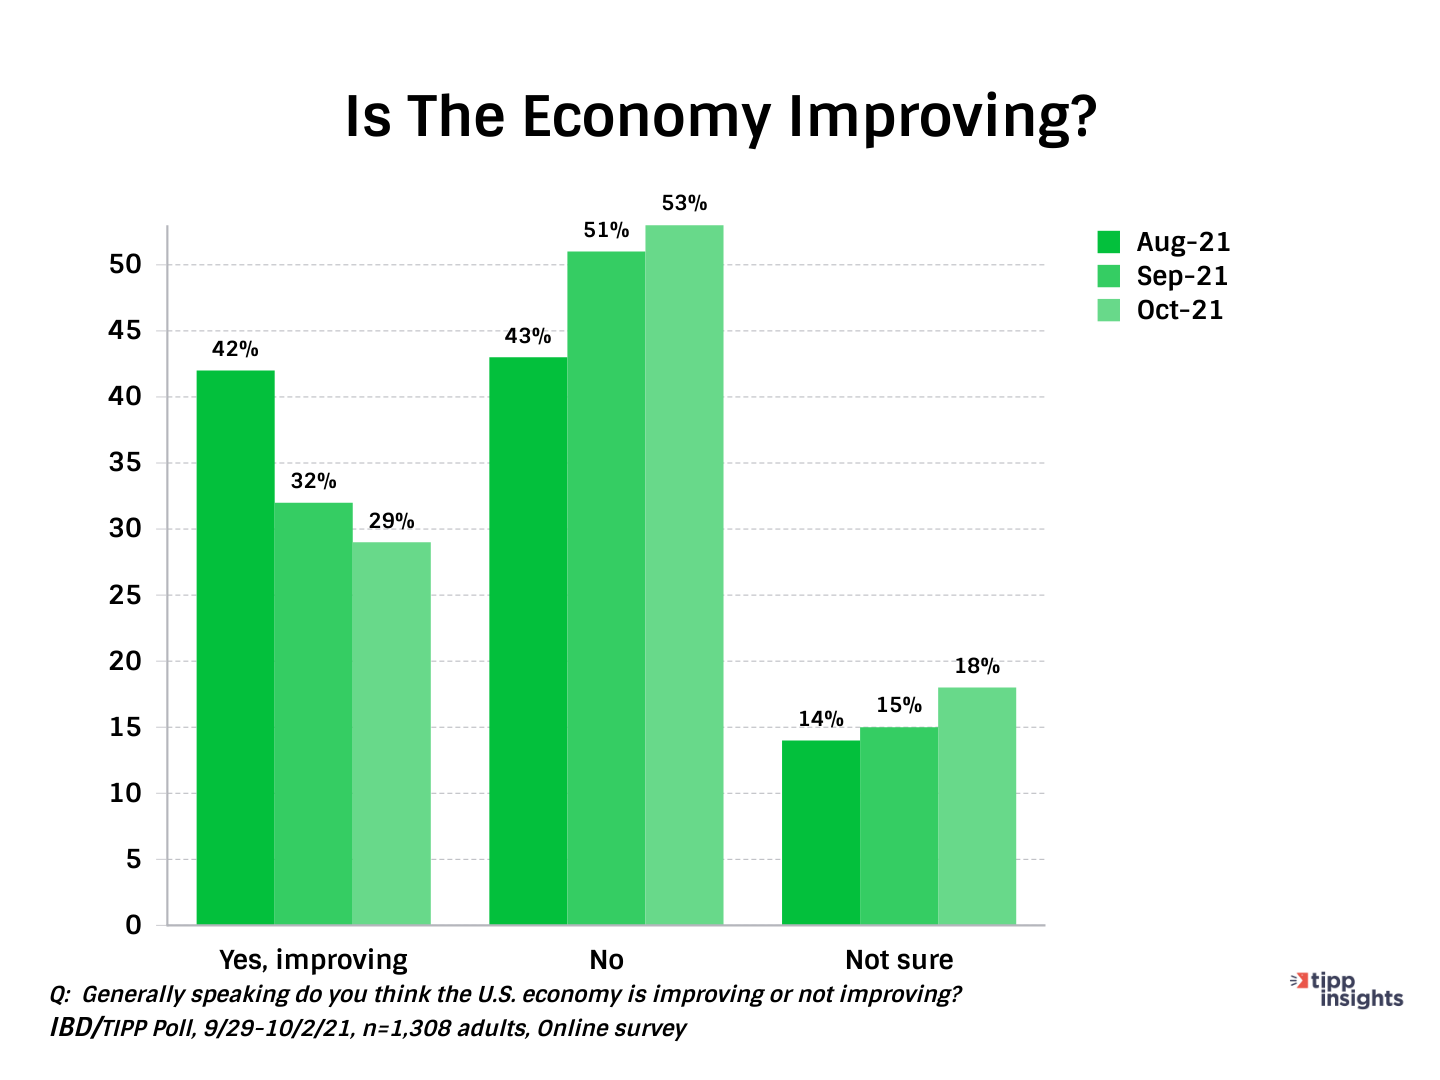 IBD/TIPP Economic Optimism Index: Americans and whether they think the Economy is Improving